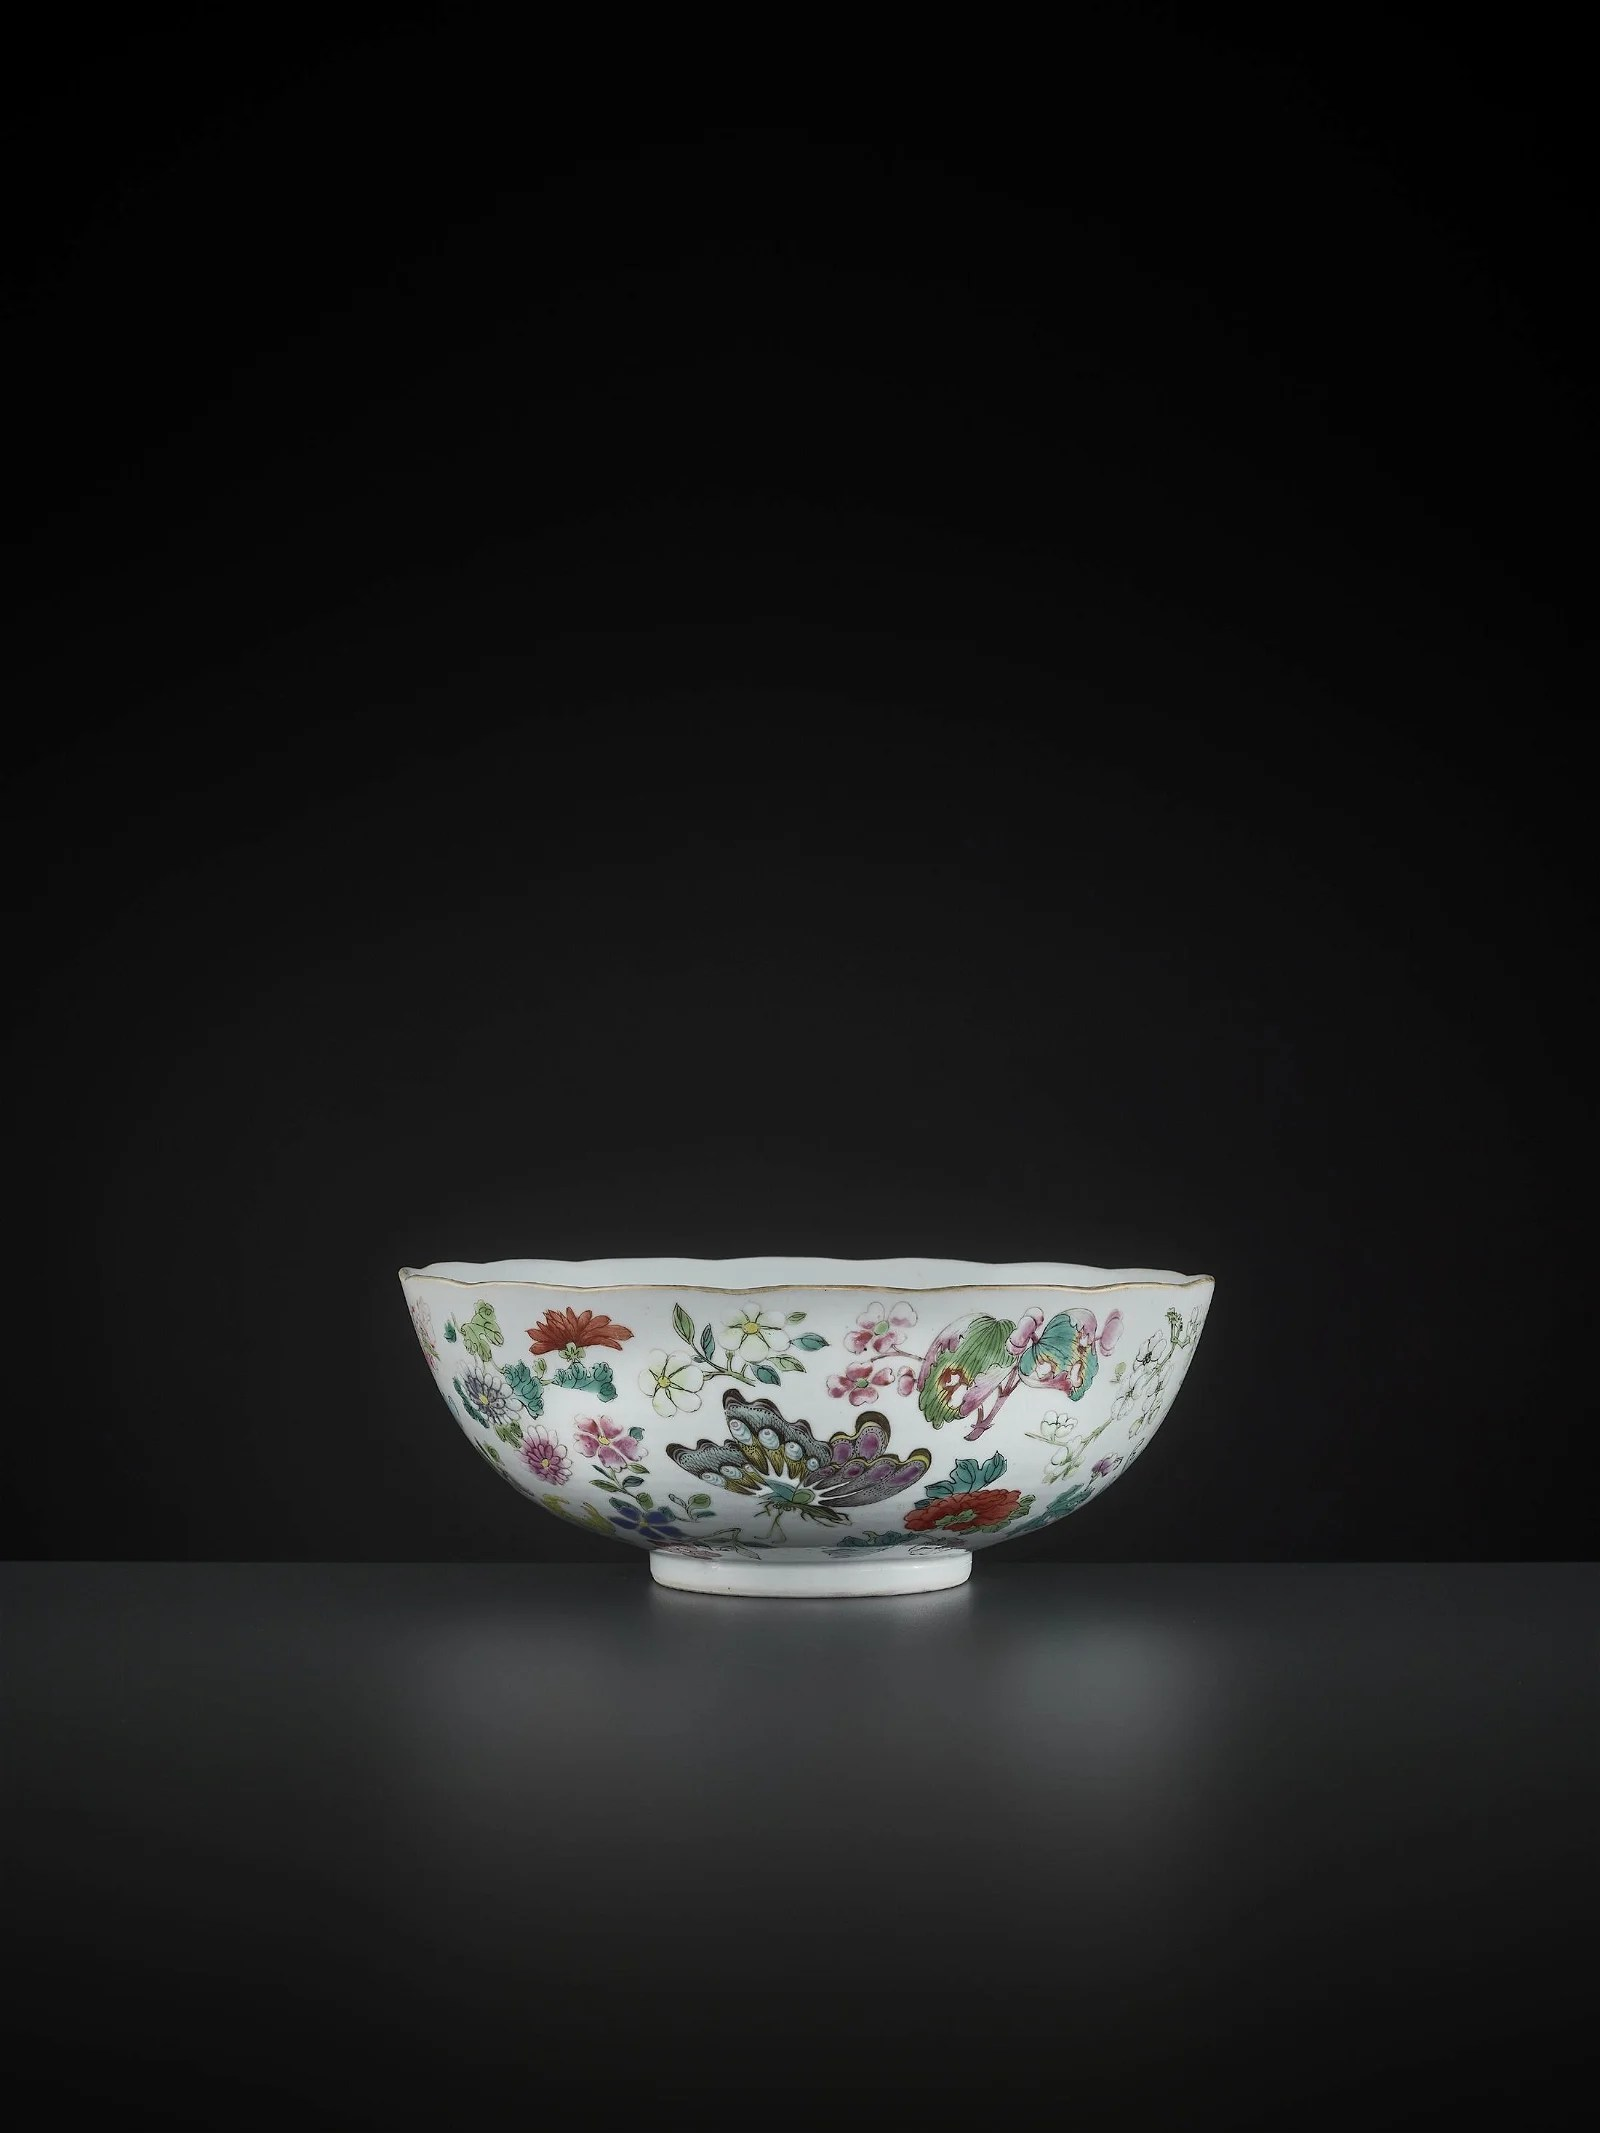 A LARGE BUTTERFLY BOWL, DAOGUANG MARK AND PERIOD